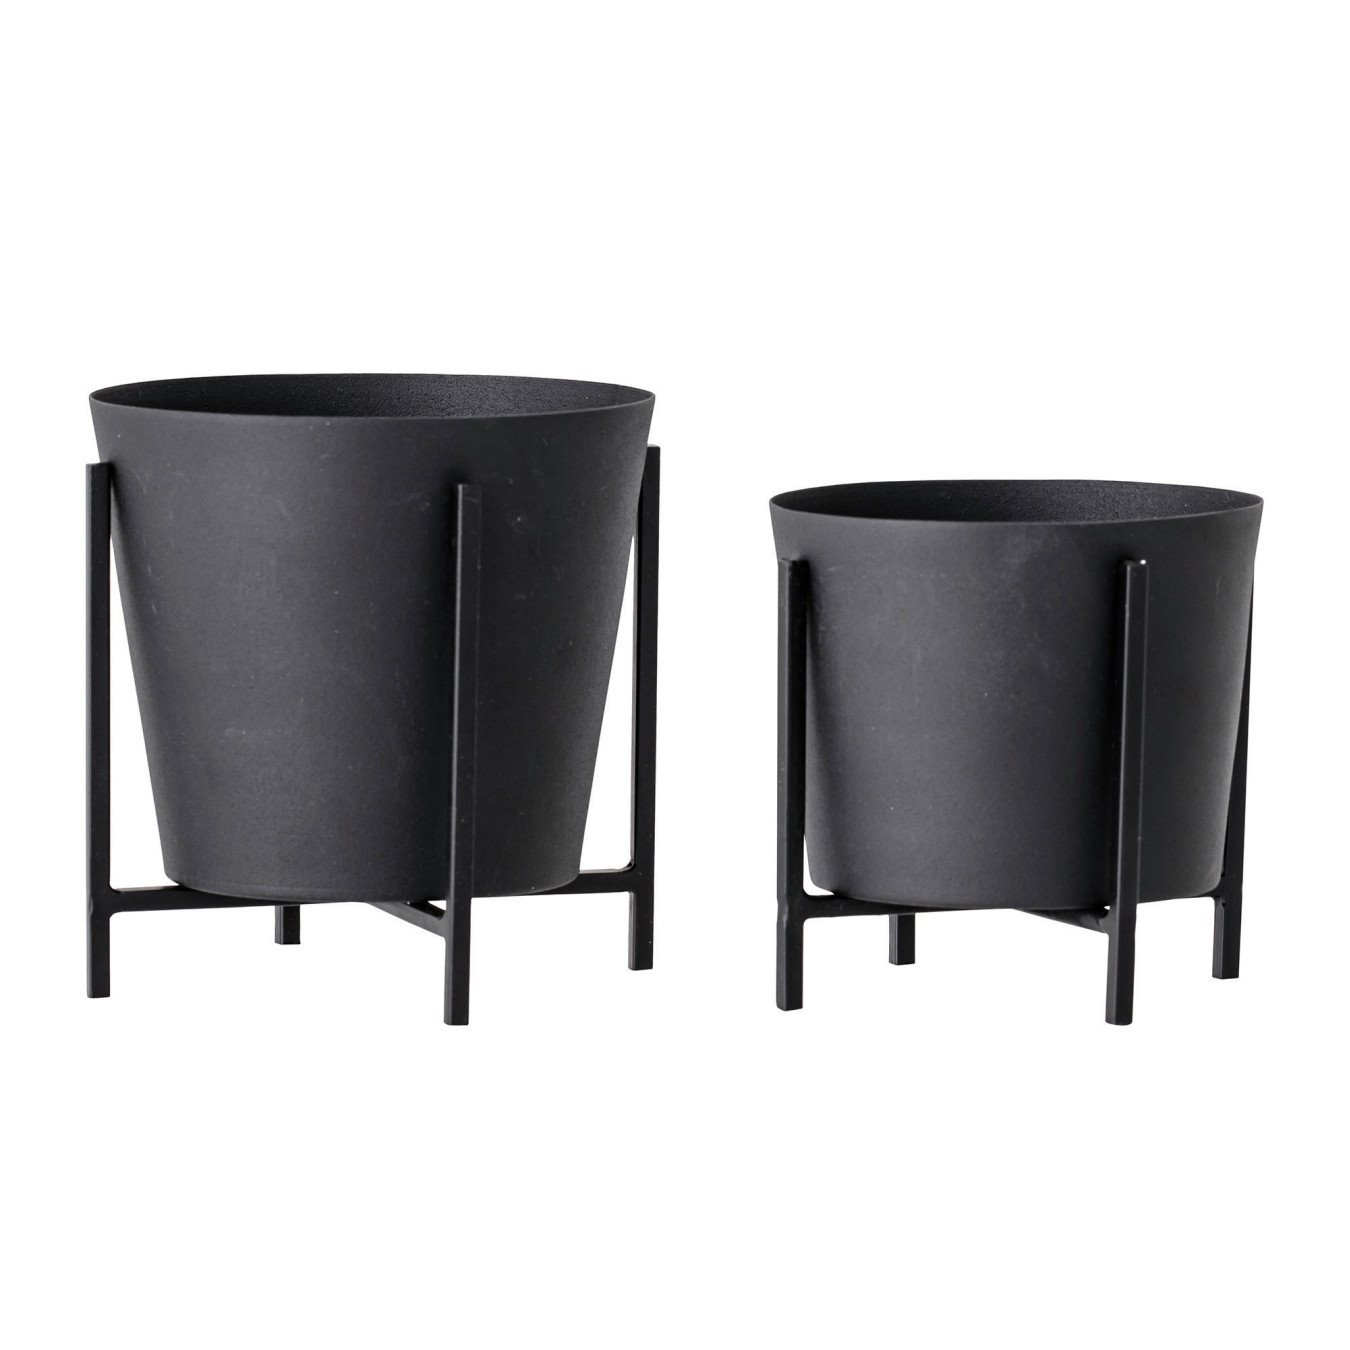 Black Metal Planter with Stand, Set of 2